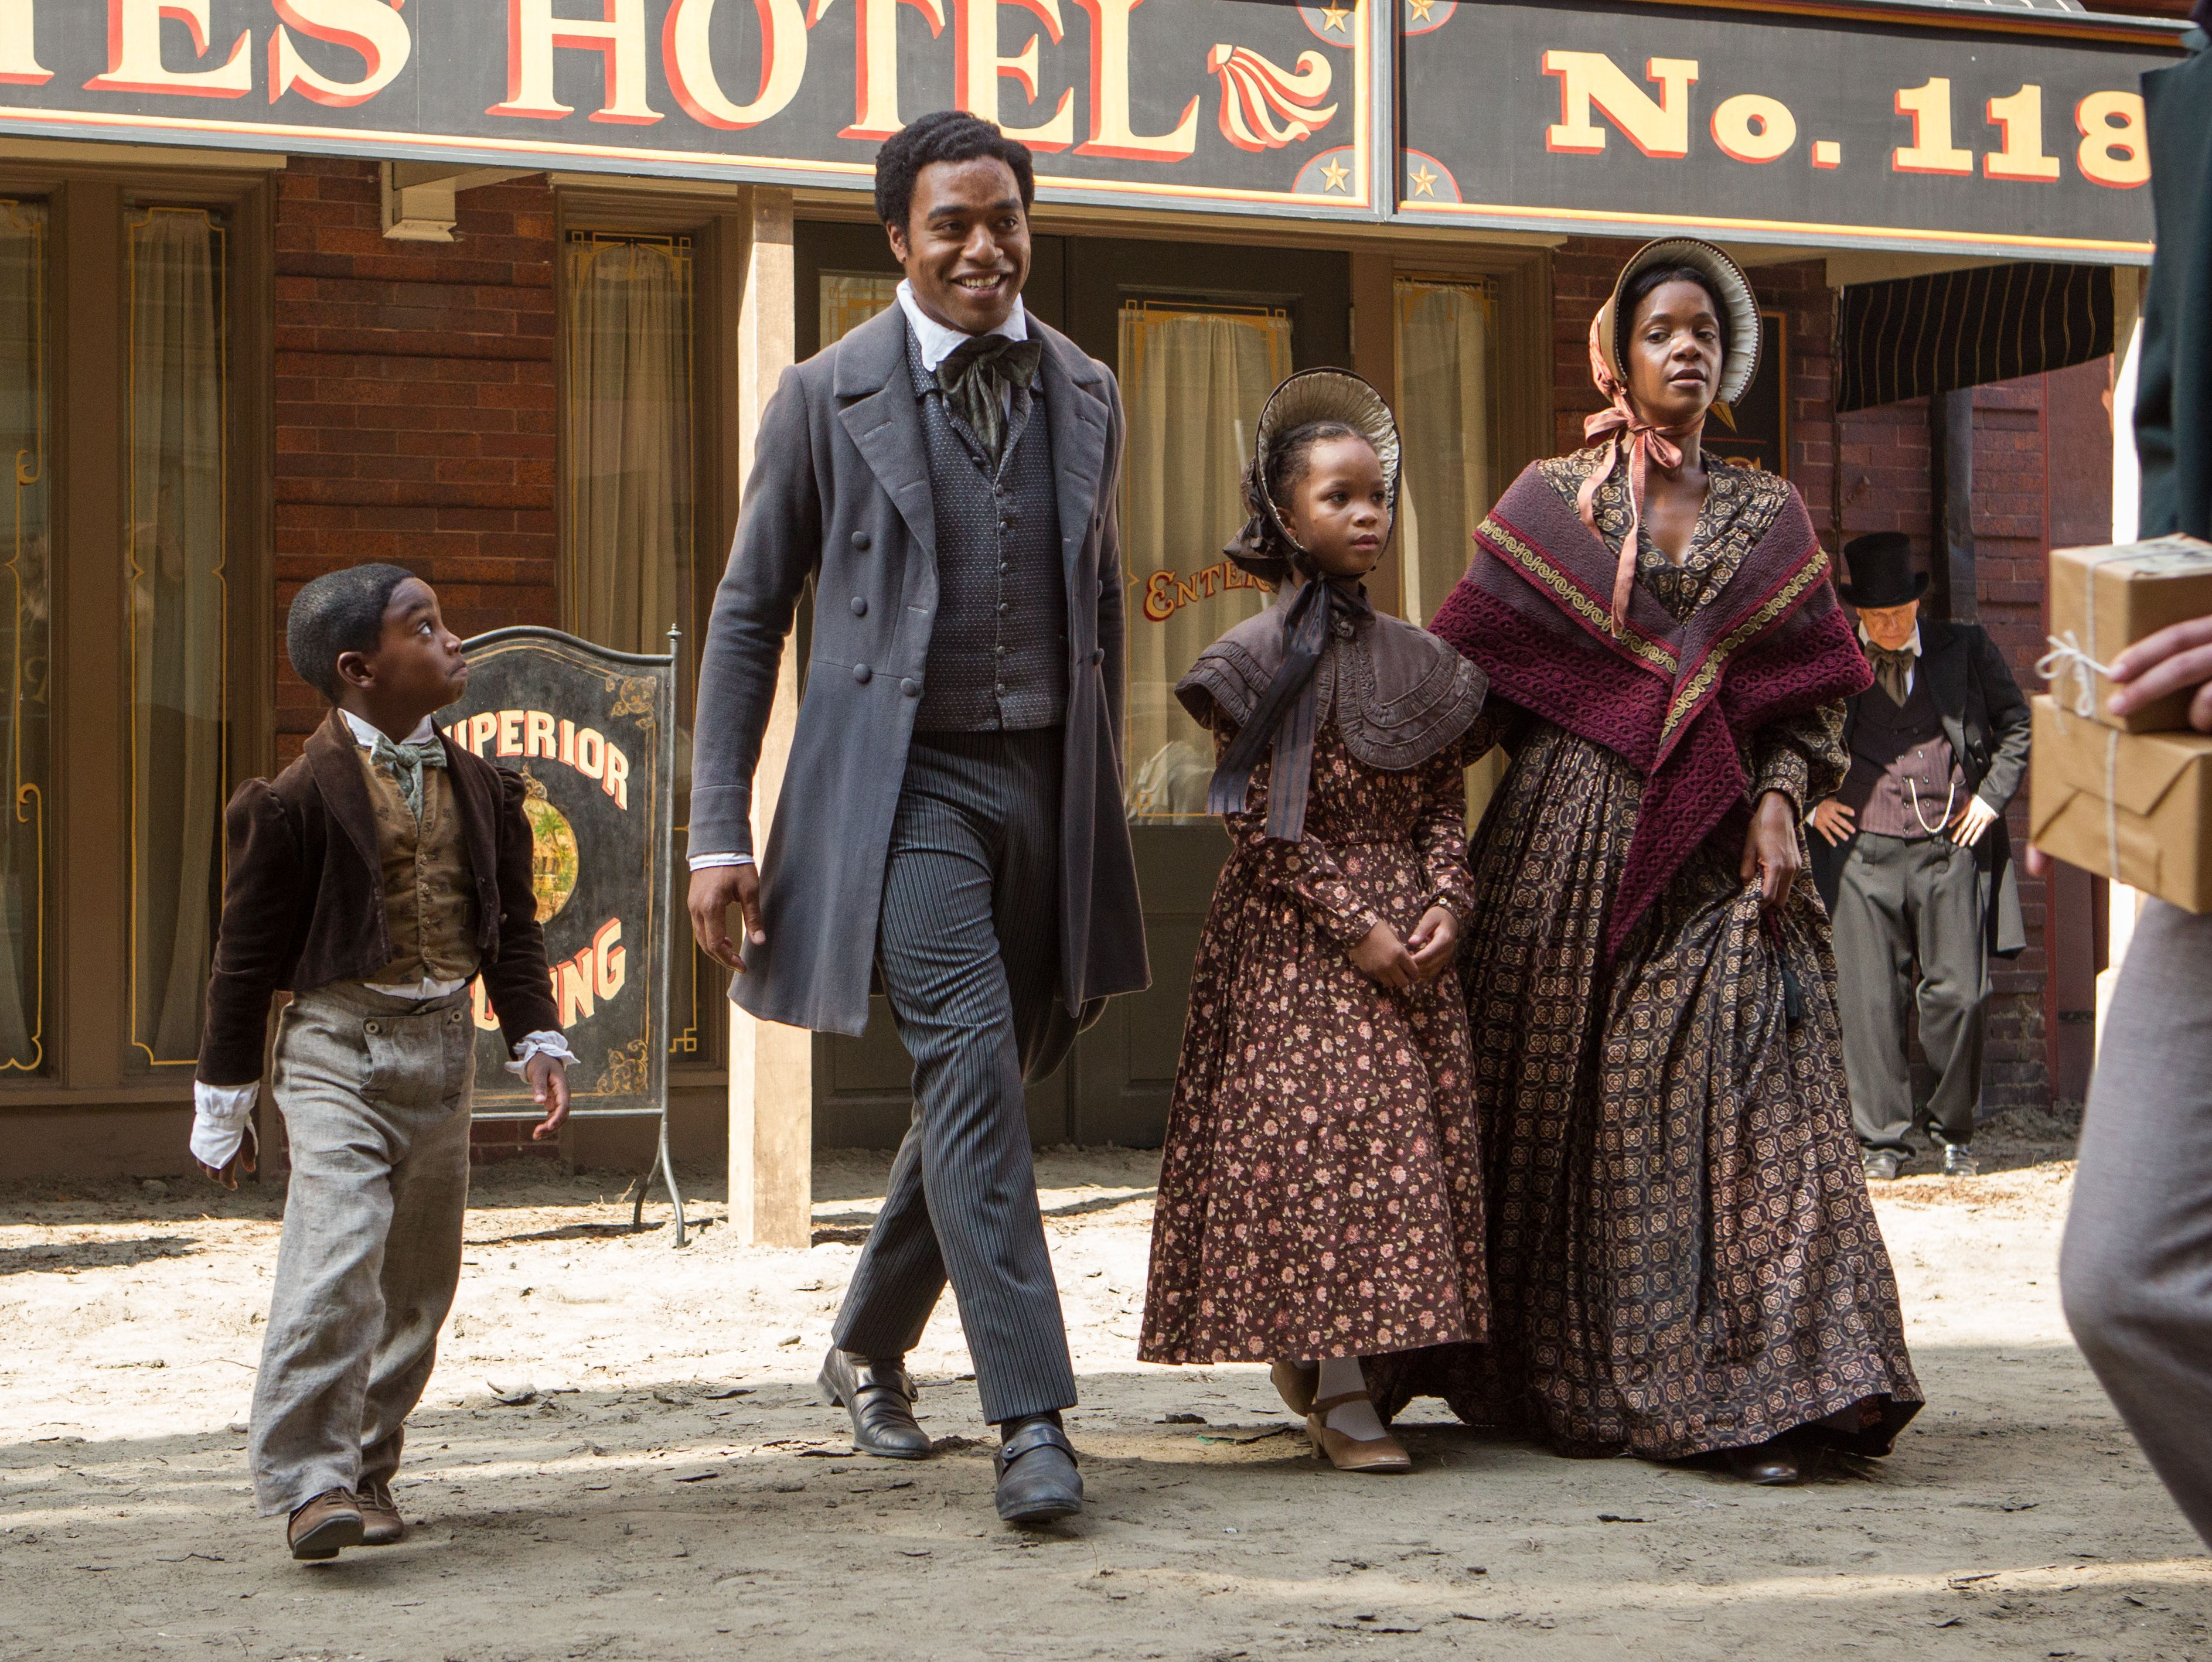 Solomon Northup as a free man with his family in the city